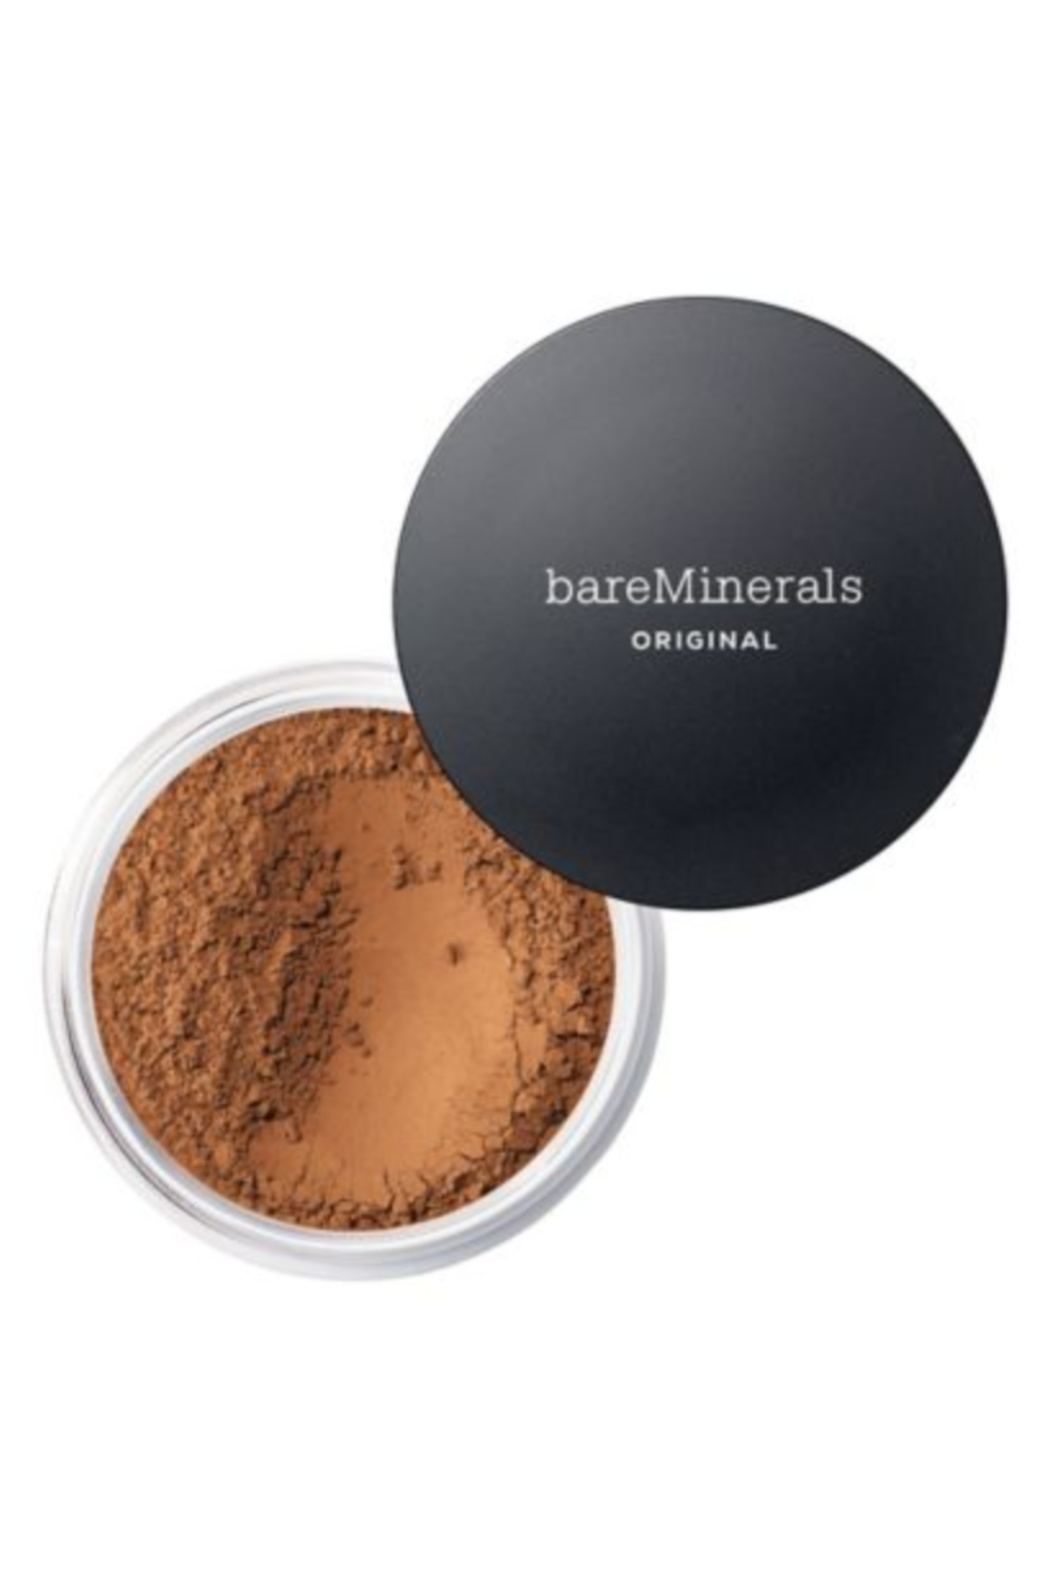 bareMinerals ORIGINAL LOOSE POWDER FOUNDATION SPF 15 - Front Cropped Image